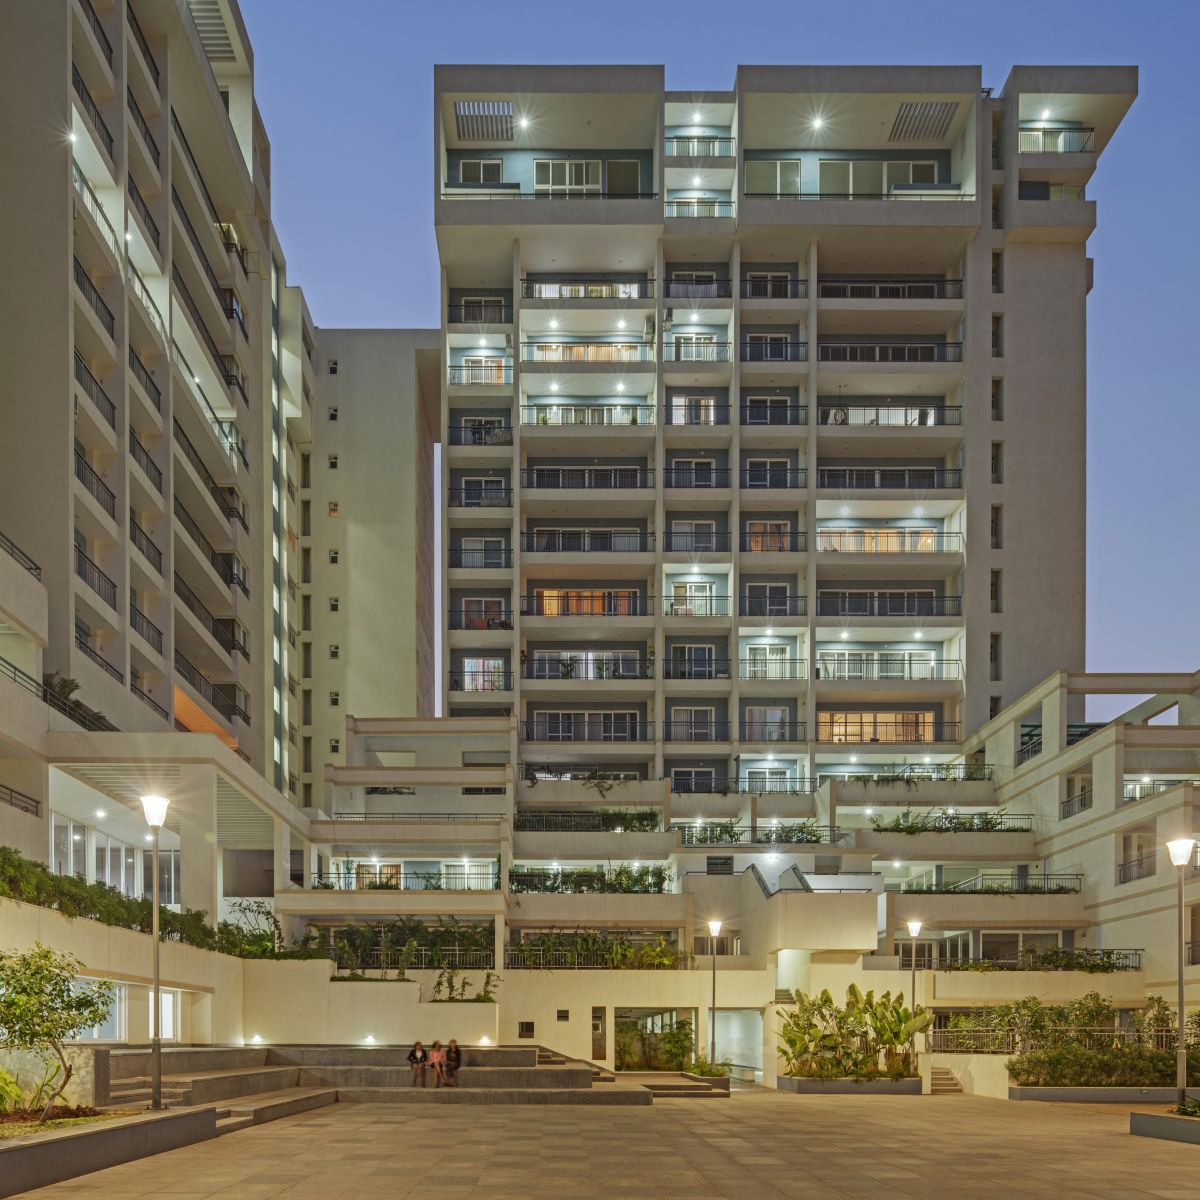 Terraced Residential Highrise, at Nallurhalli Road, Siddhapura, Bangalore, by CnT Architects 23